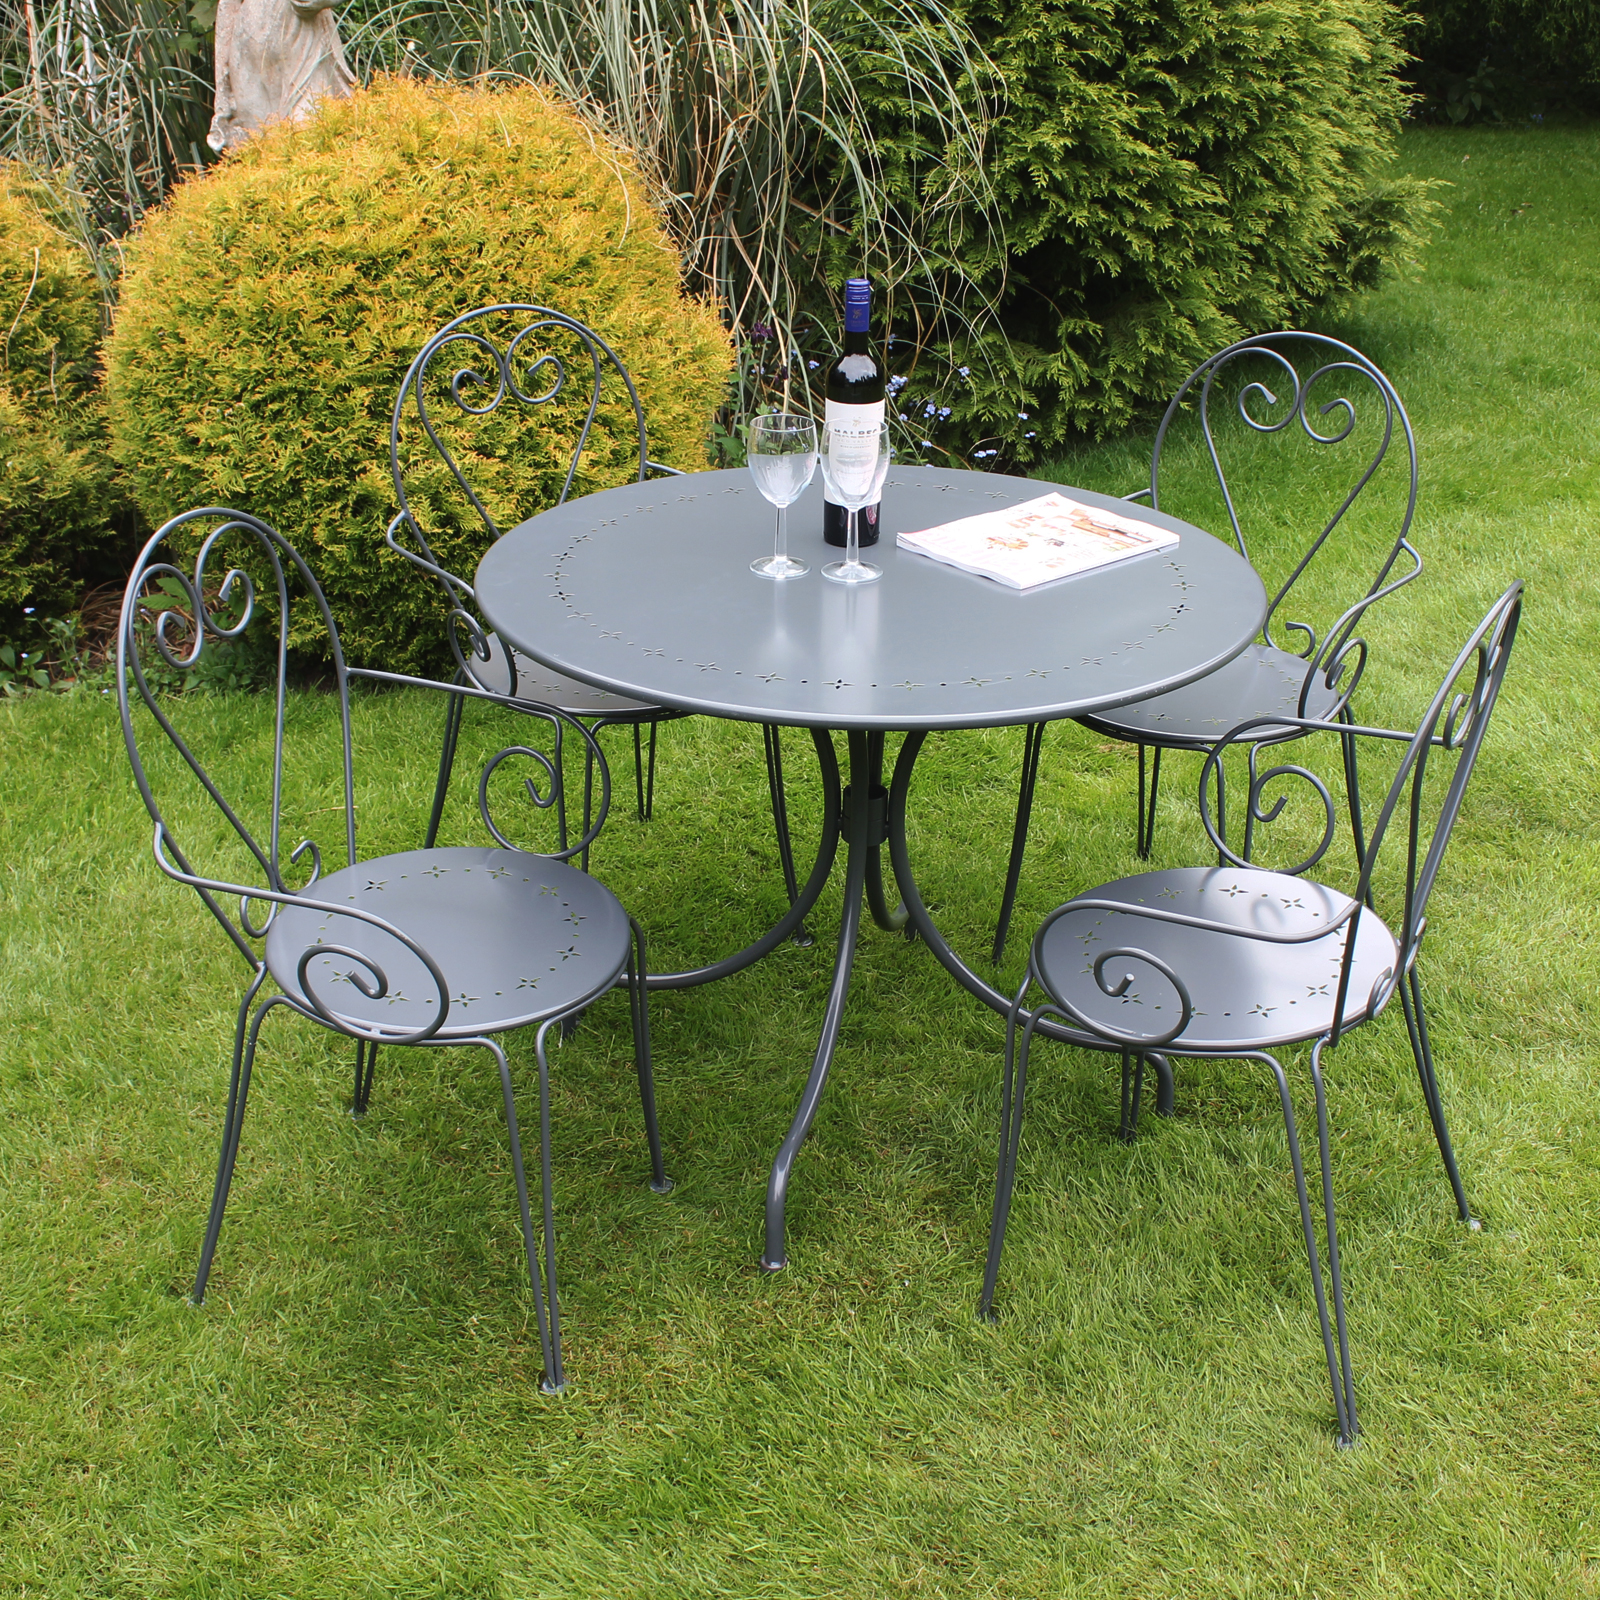 bentley garden furniture steel heart 5 piece shabby - Garden Furniture Steel